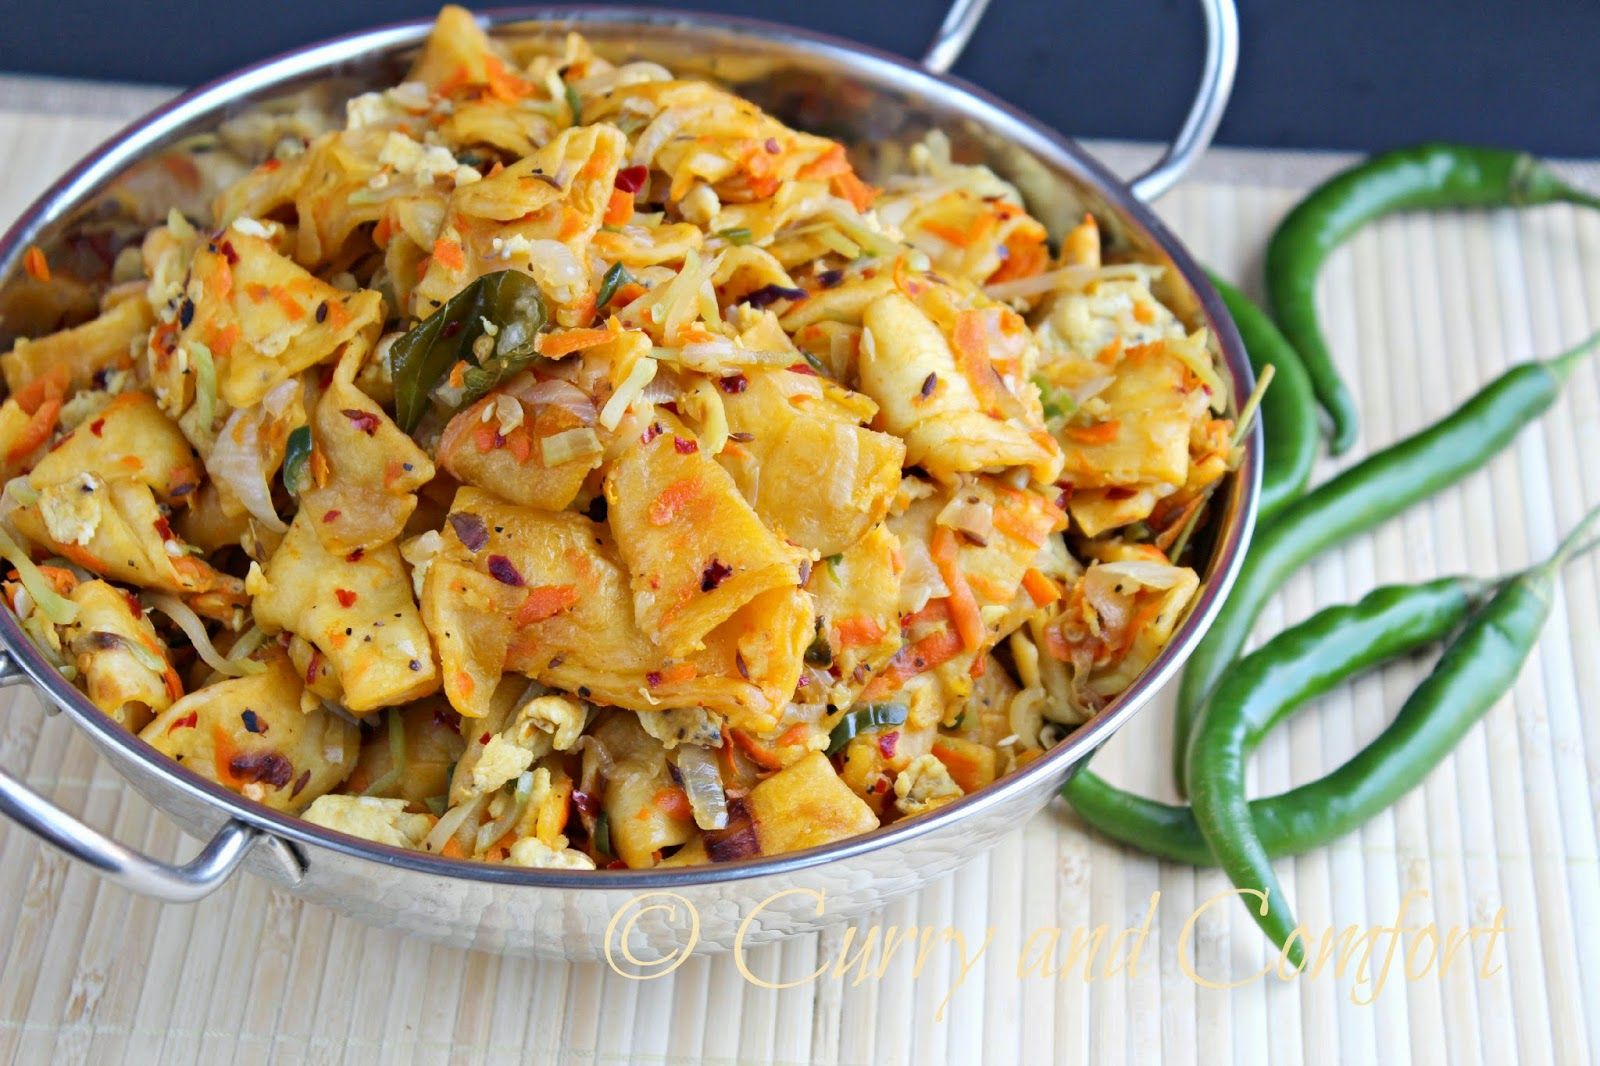 Stir fried tortillas and vegetables sri lankan kottu roti fake curry and comfort stir fried tortillas and vegetables sri lankan kottu roti fake out forumfinder Choice Image